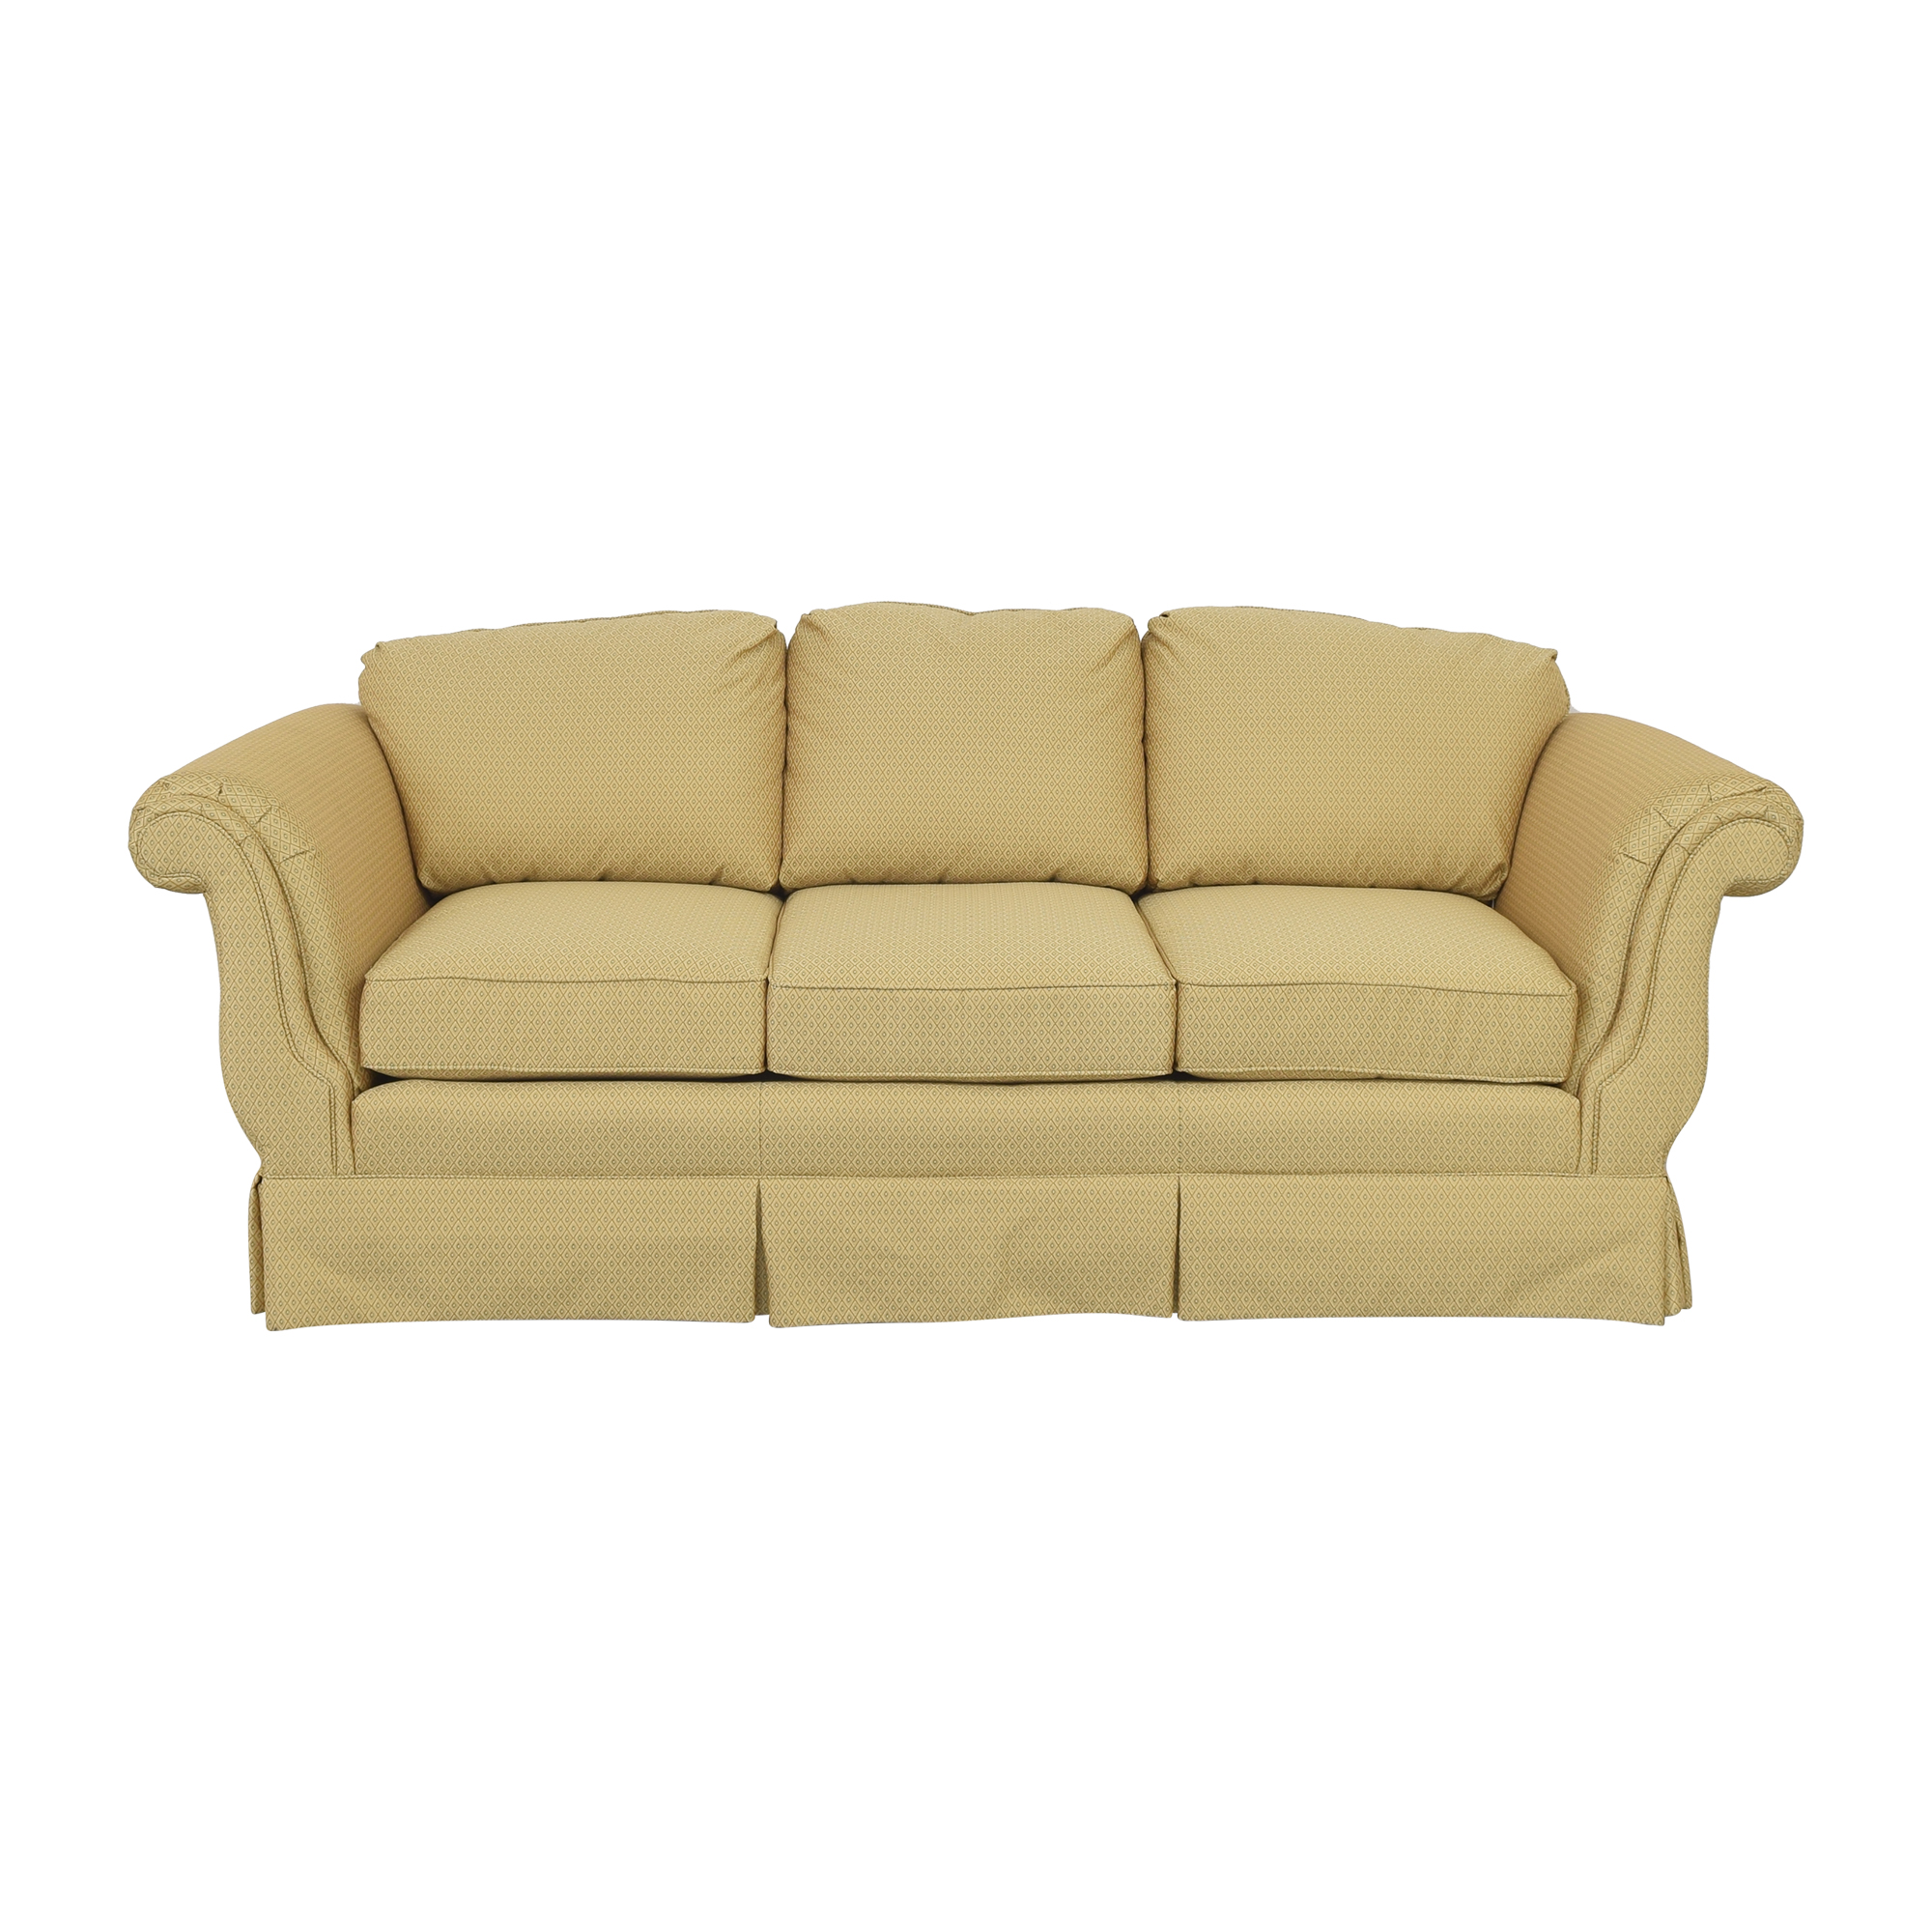 Three Cushion Roll Arm Sofa second hand